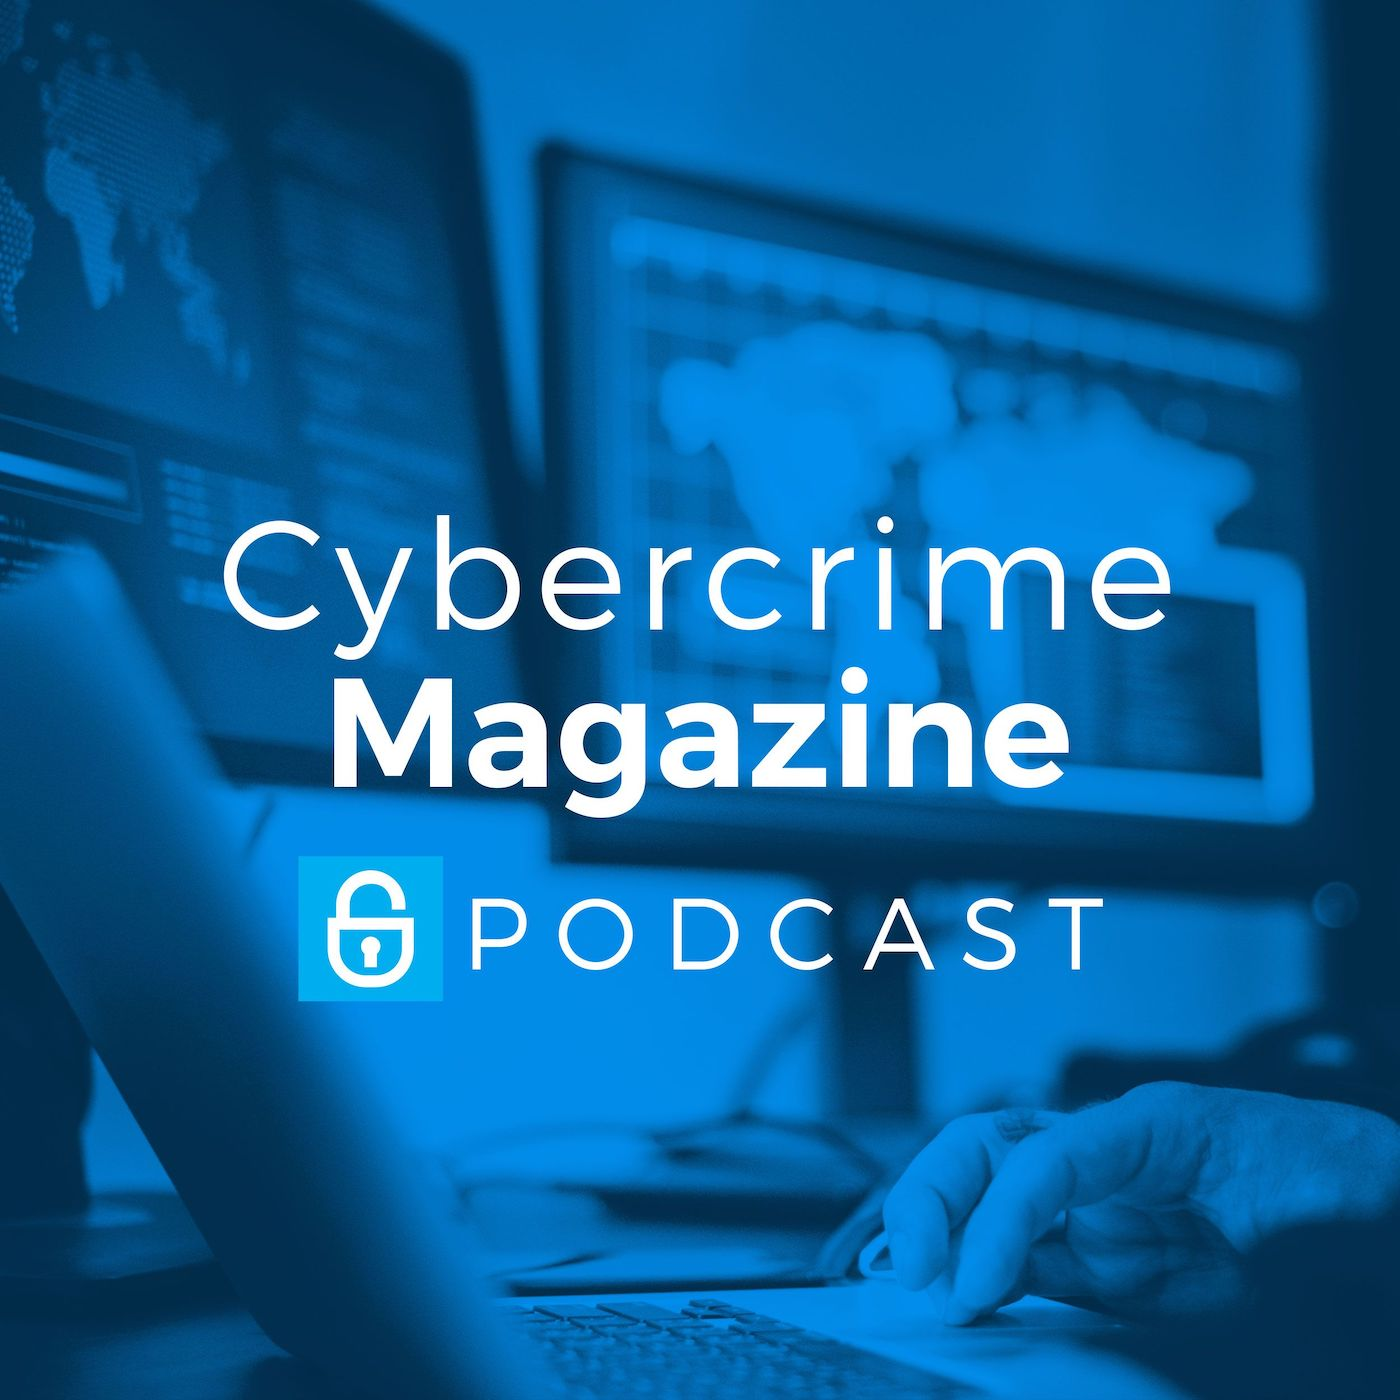 Podcast Cover of Cybercrime Magazine Podcast